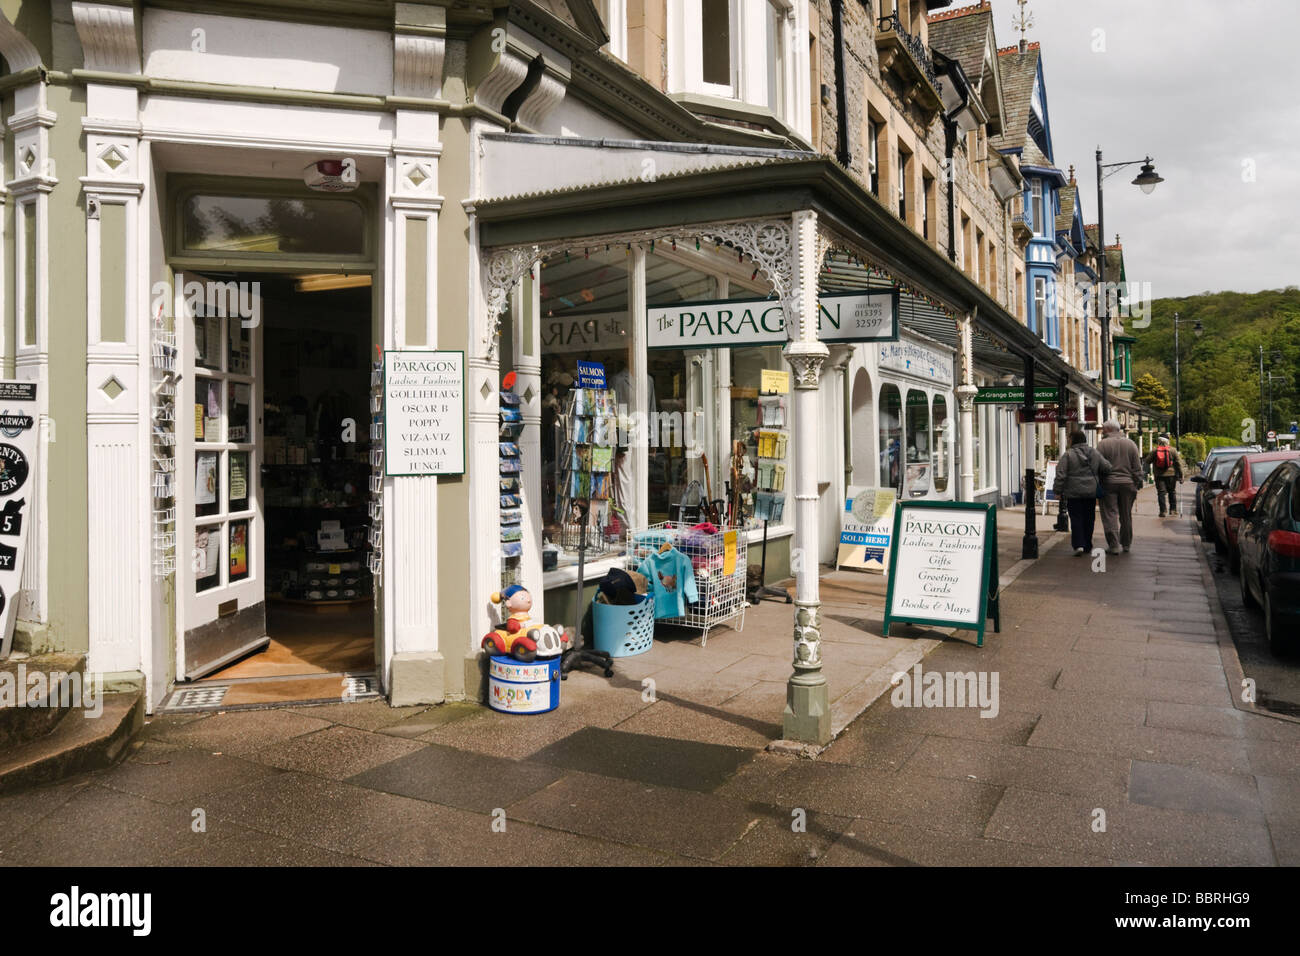 Veranda on shop fronts at Grange over Sands, Cumbria. - Stock Image